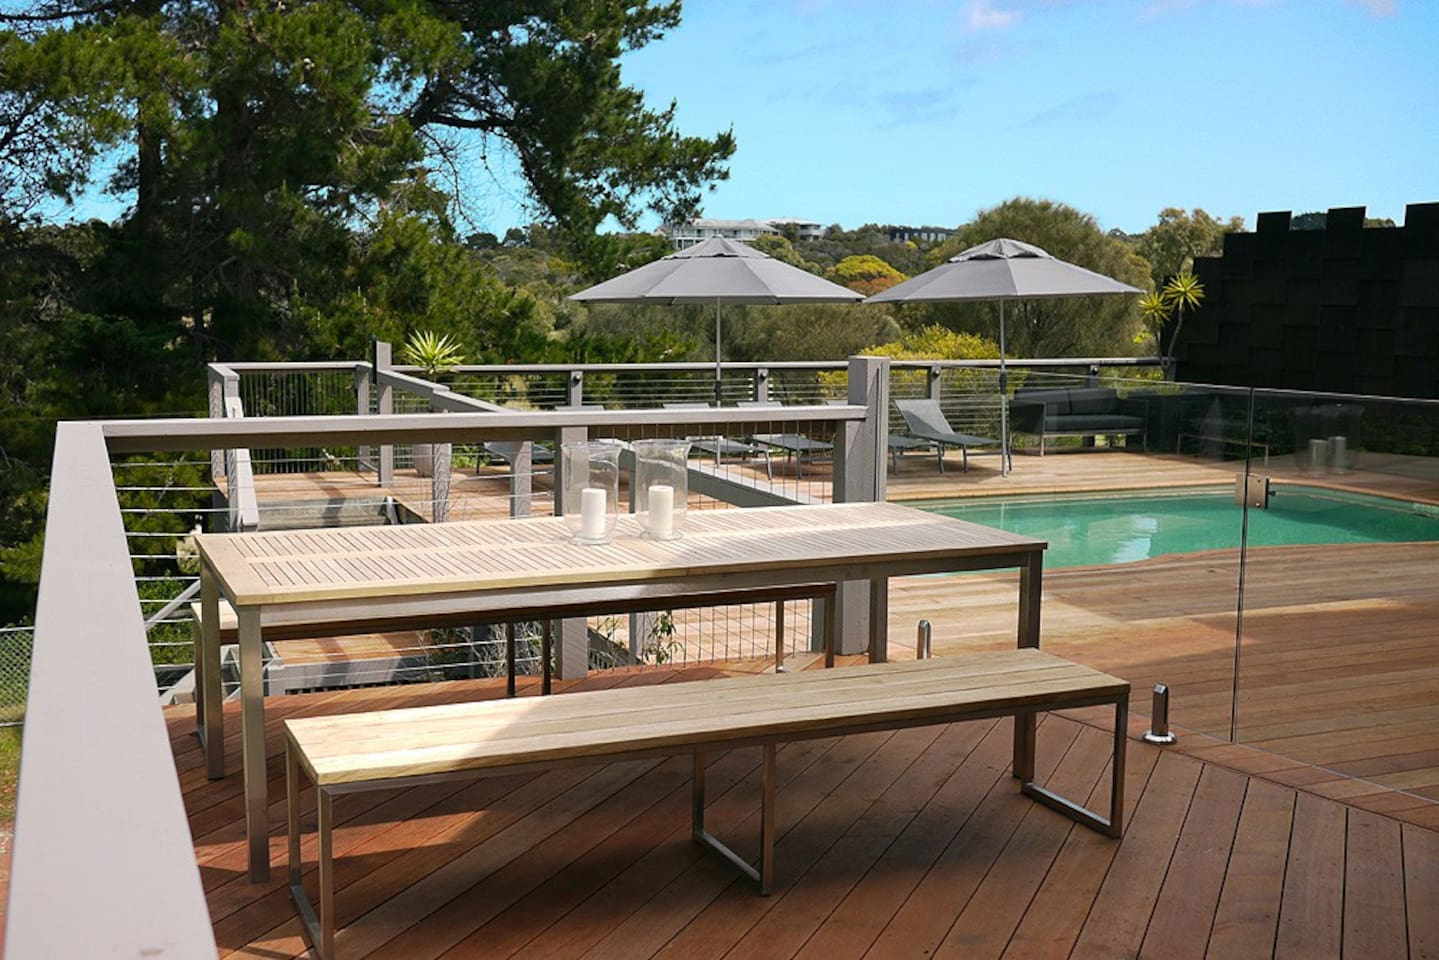 Outdoor dining area overlooking pool, tennis court and golf course